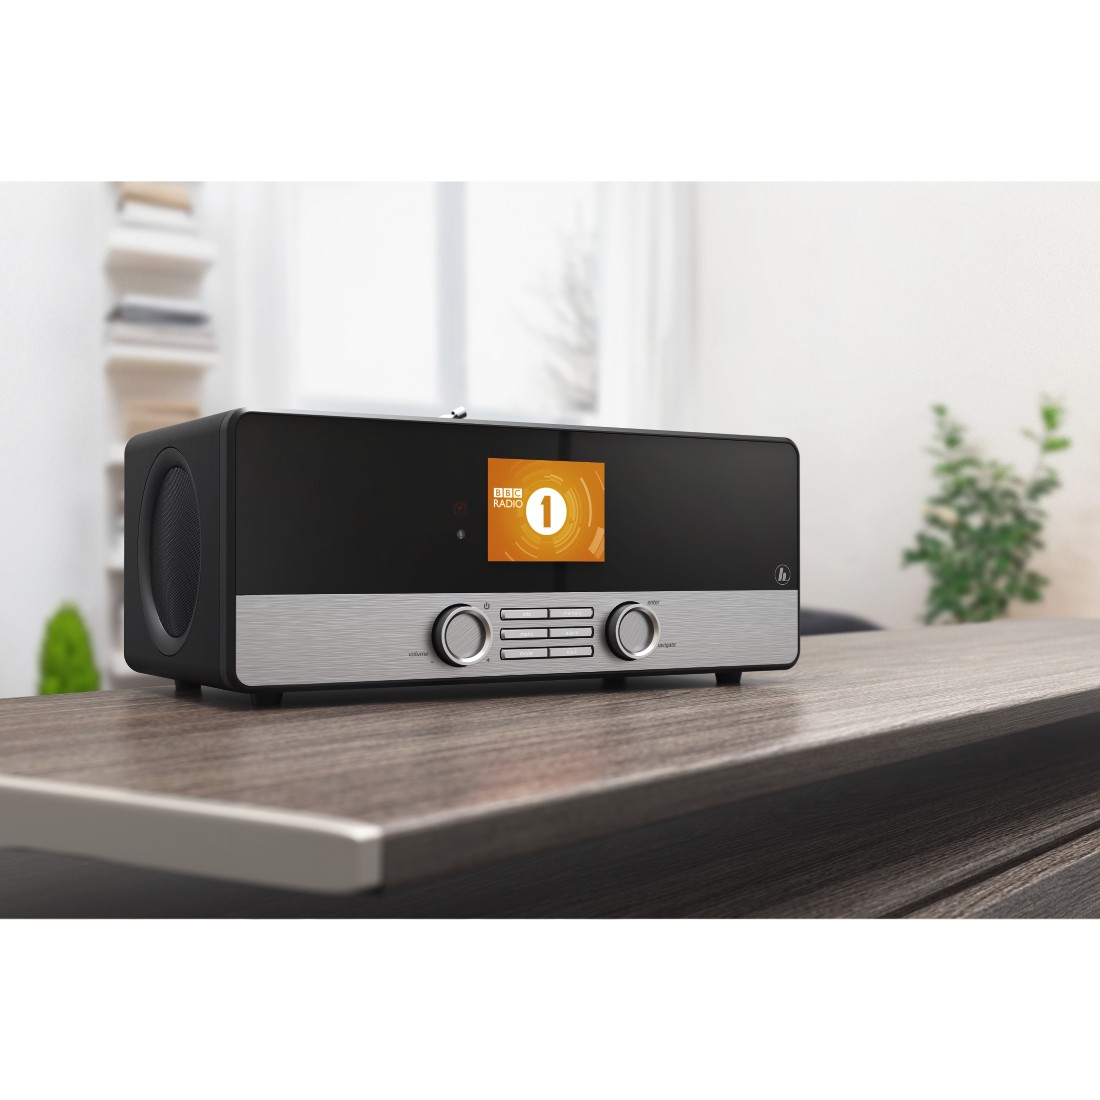 awx High-Res Appliance - Hama, DIR3100MS Digital Radio, Internet Radio/DAB+/FM/Multi-Room/ App Control